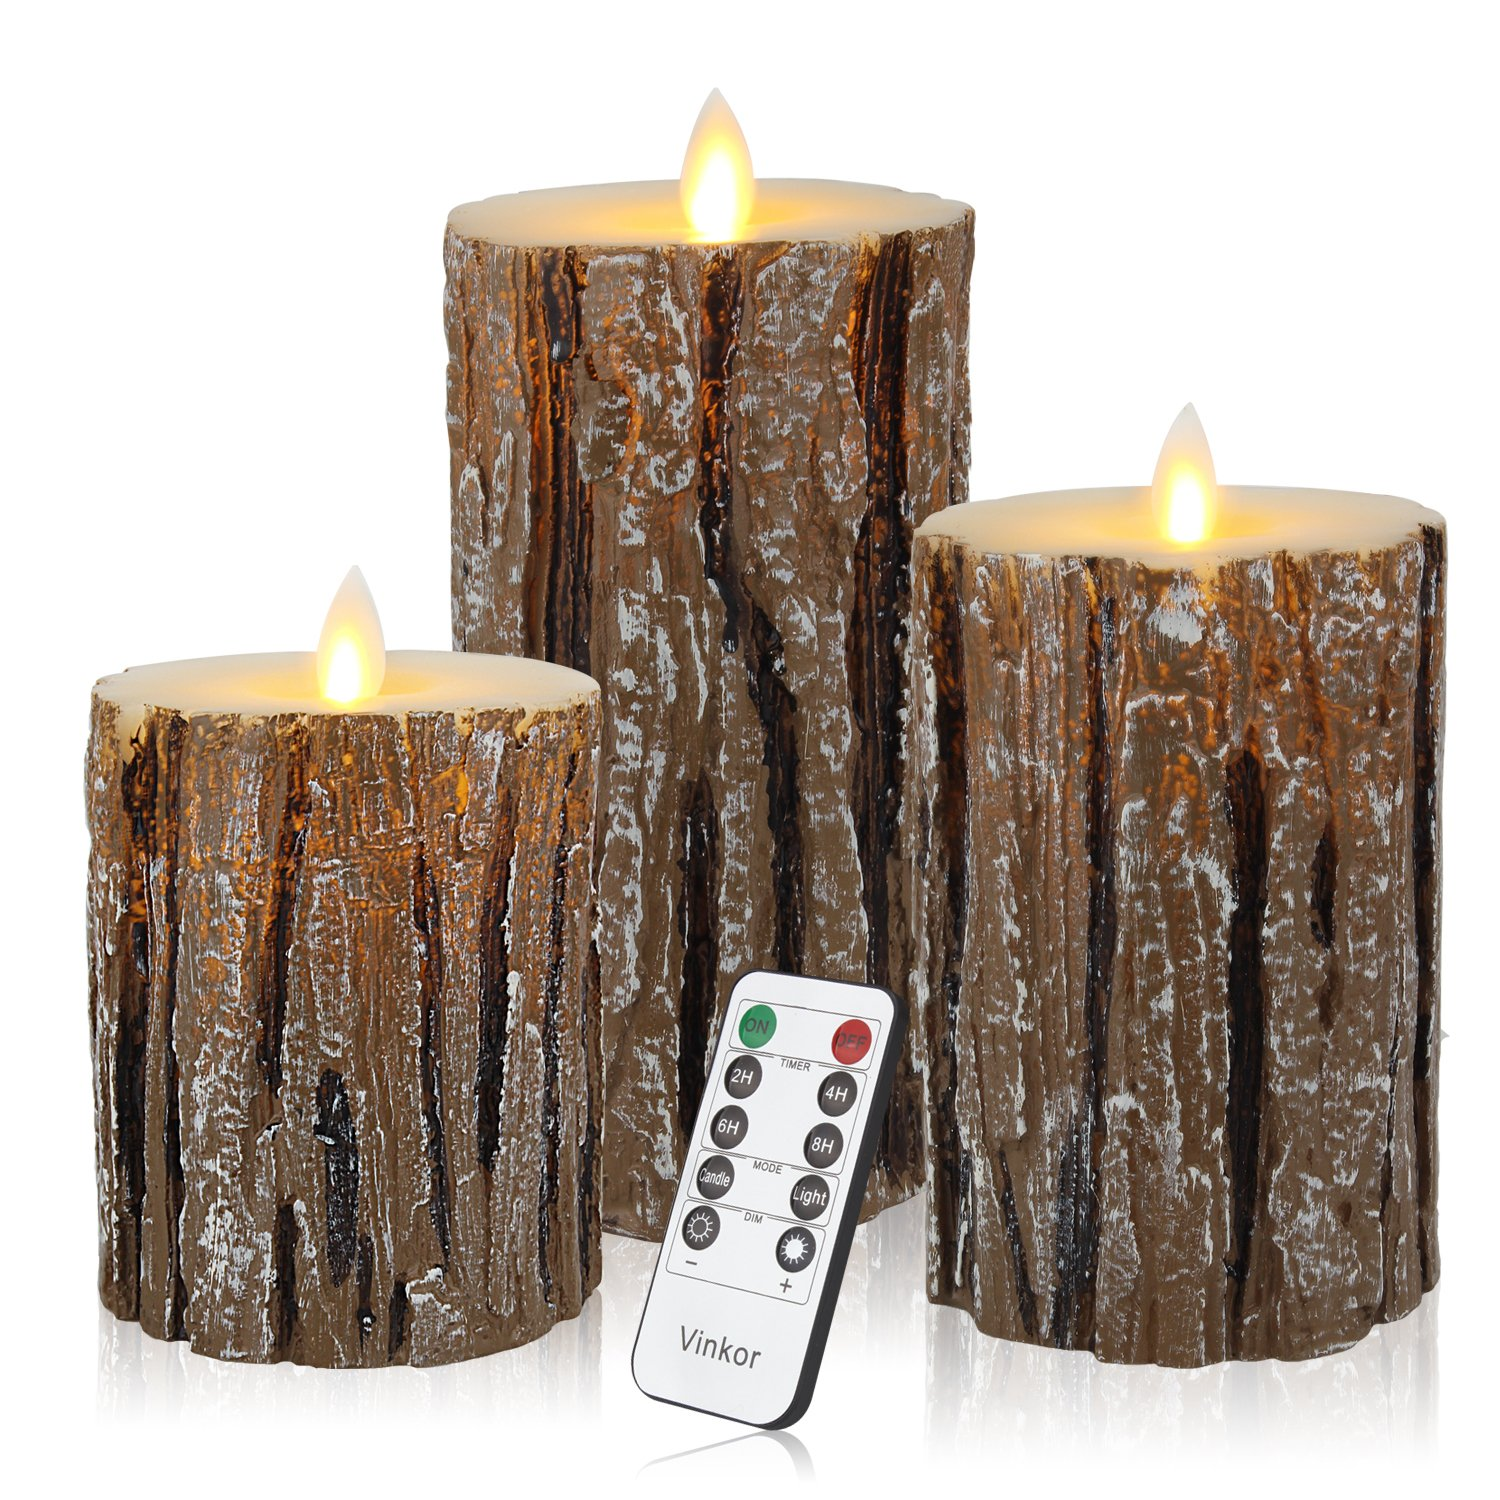 Vinkor Flameless Candles Flickering Candles Decorative Battery Flameless Candle Classic Real Wax Pillar With Dancing LED Flame & 10-key Remote Control 2/4/6/ 8 Hours Timers (Birch Effect) by Vinkor (Image #1)